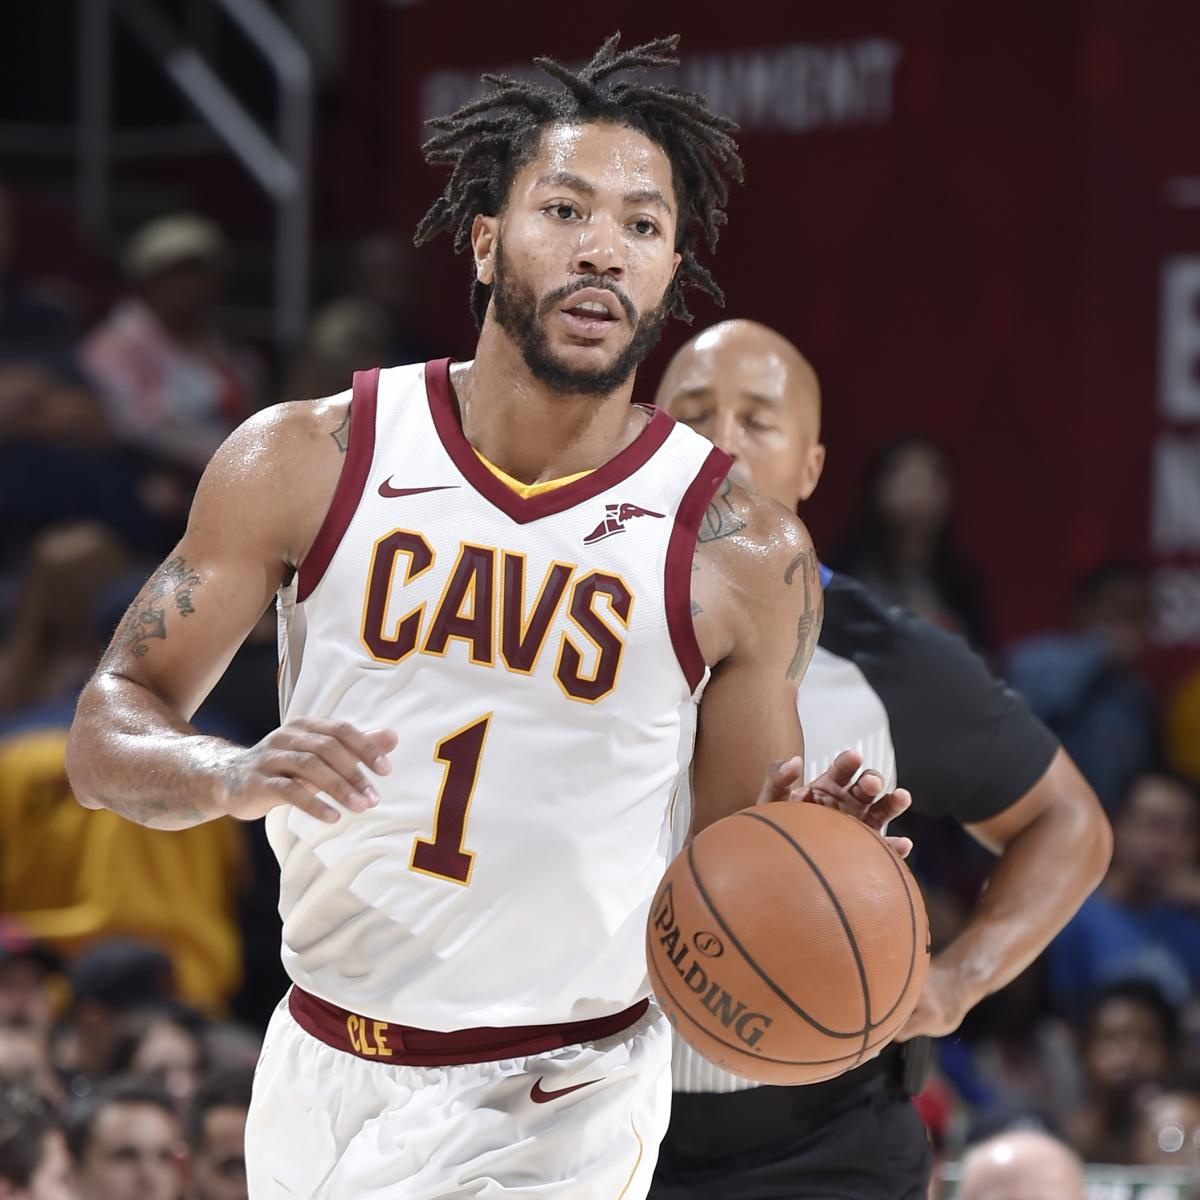 Derrick Rose 'Fine' with Cavs Salary, Says He'll Make ...